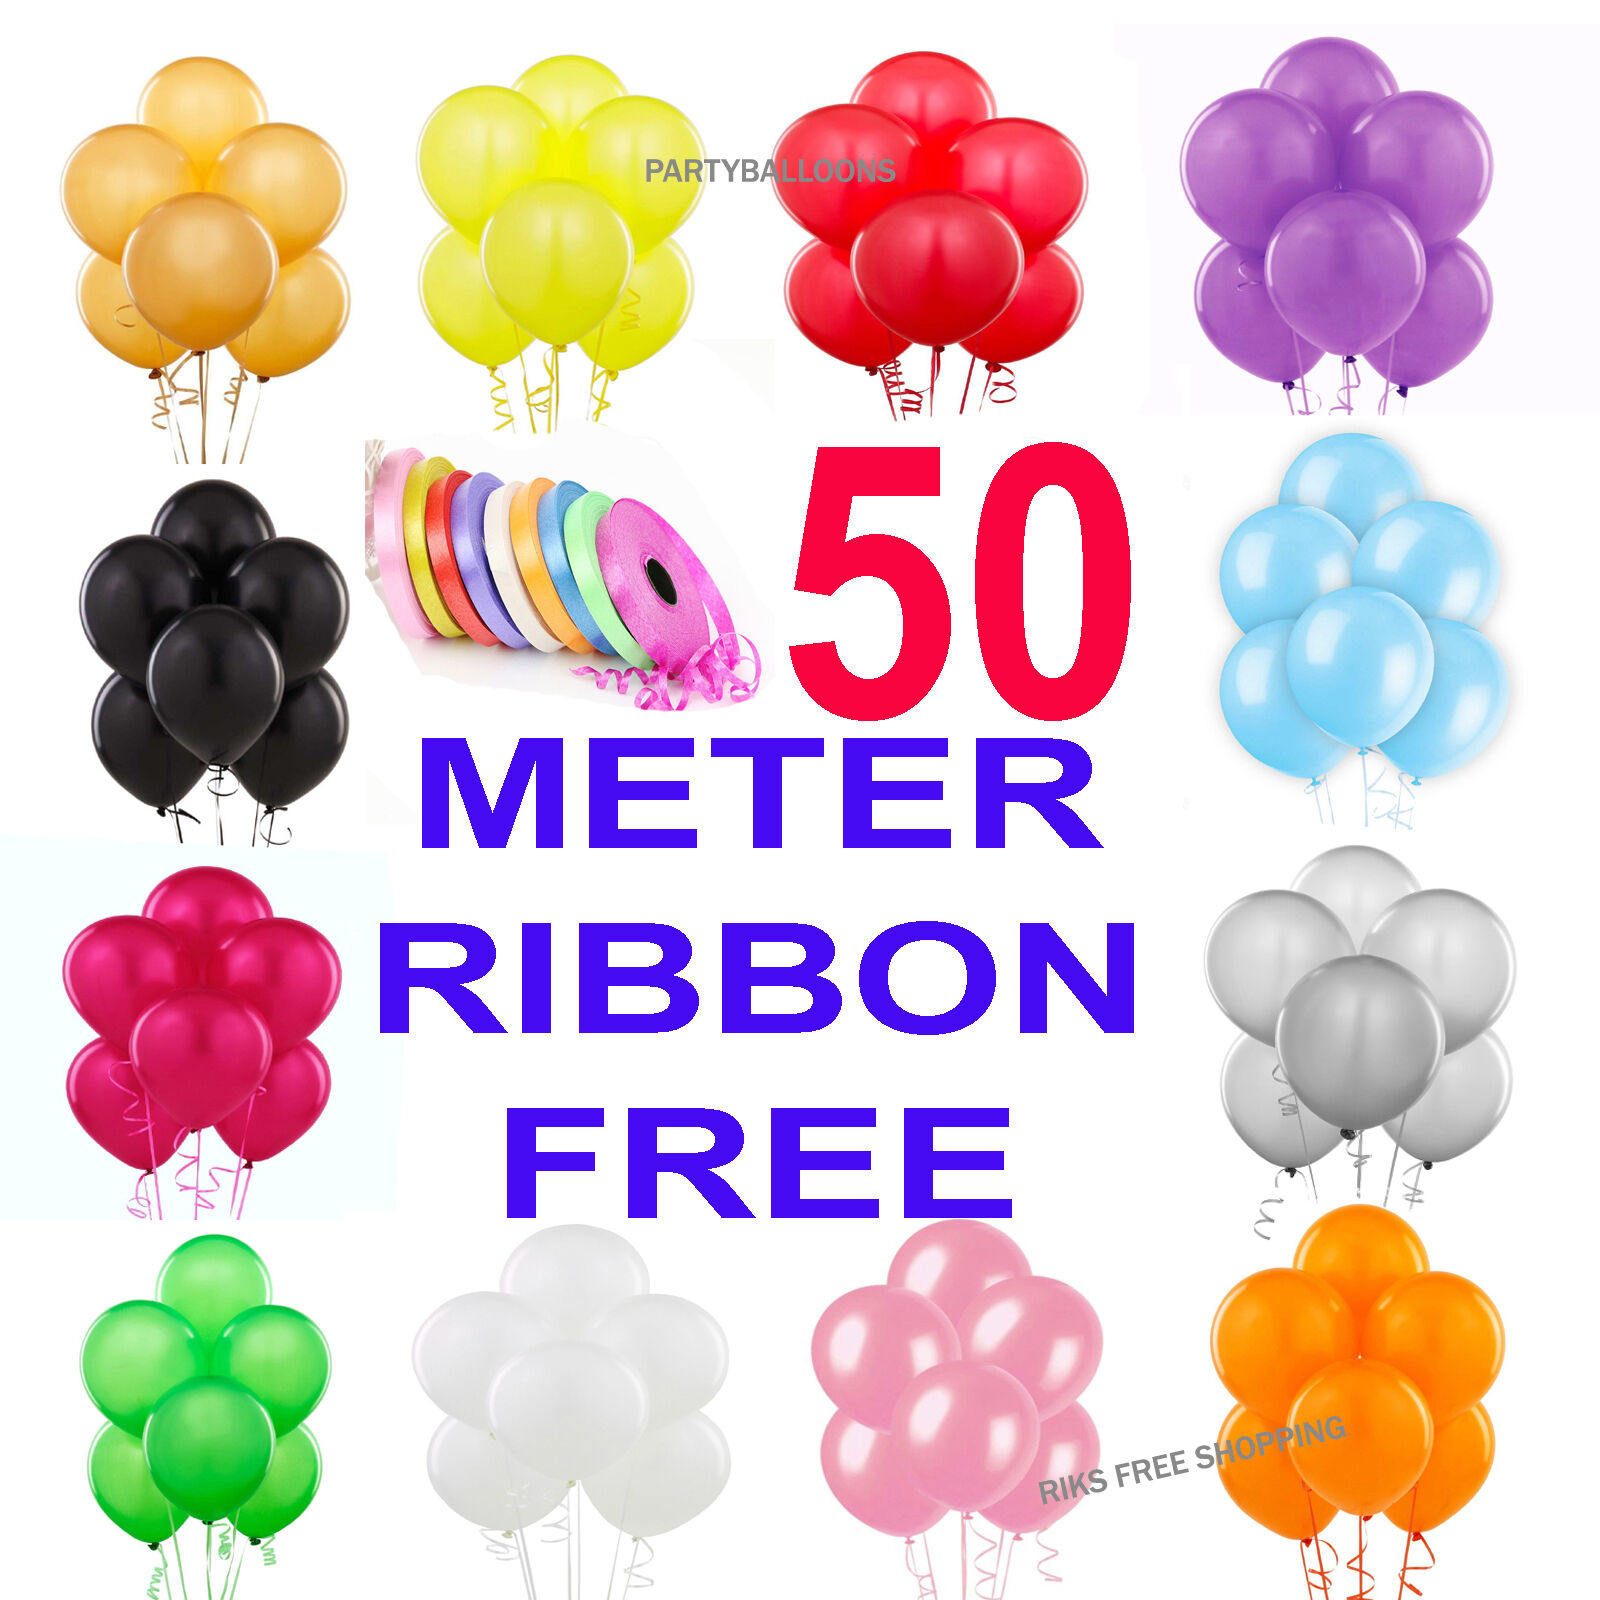 100 LARGE VERY CLEAR BALLOONS HIGH QUALITY BALONS PARTY BIRTHDAY BALLONS Wedding